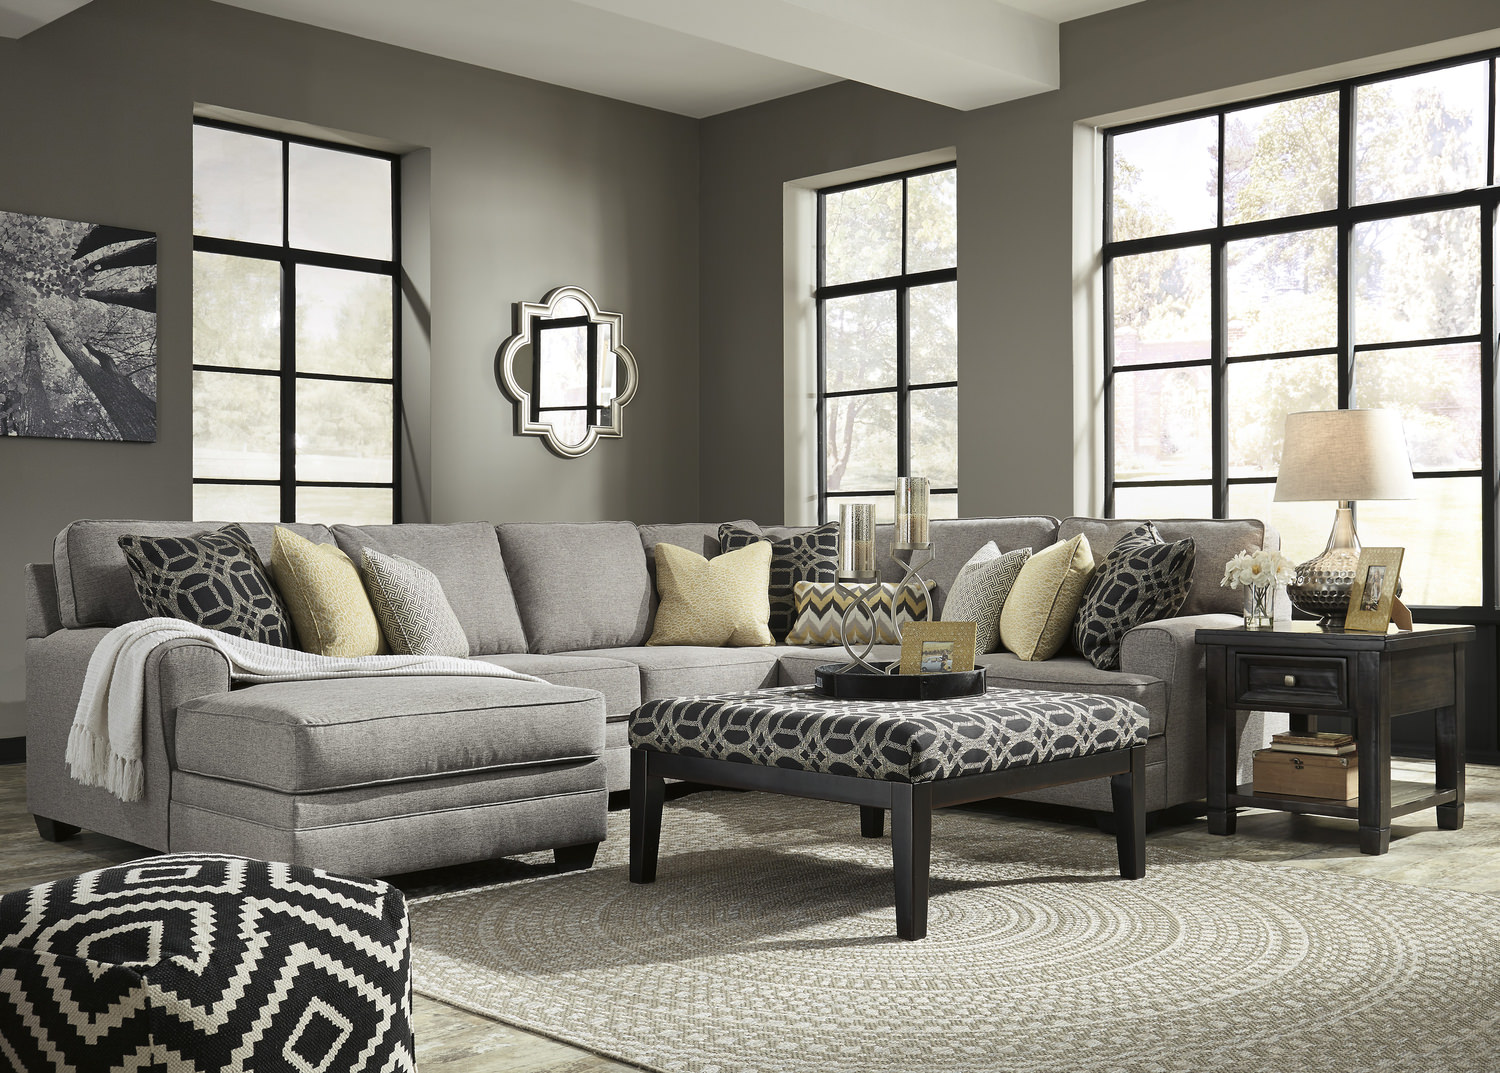 City 4 Piece Sectional. City 4 Piece Sectional   HOM Furniture